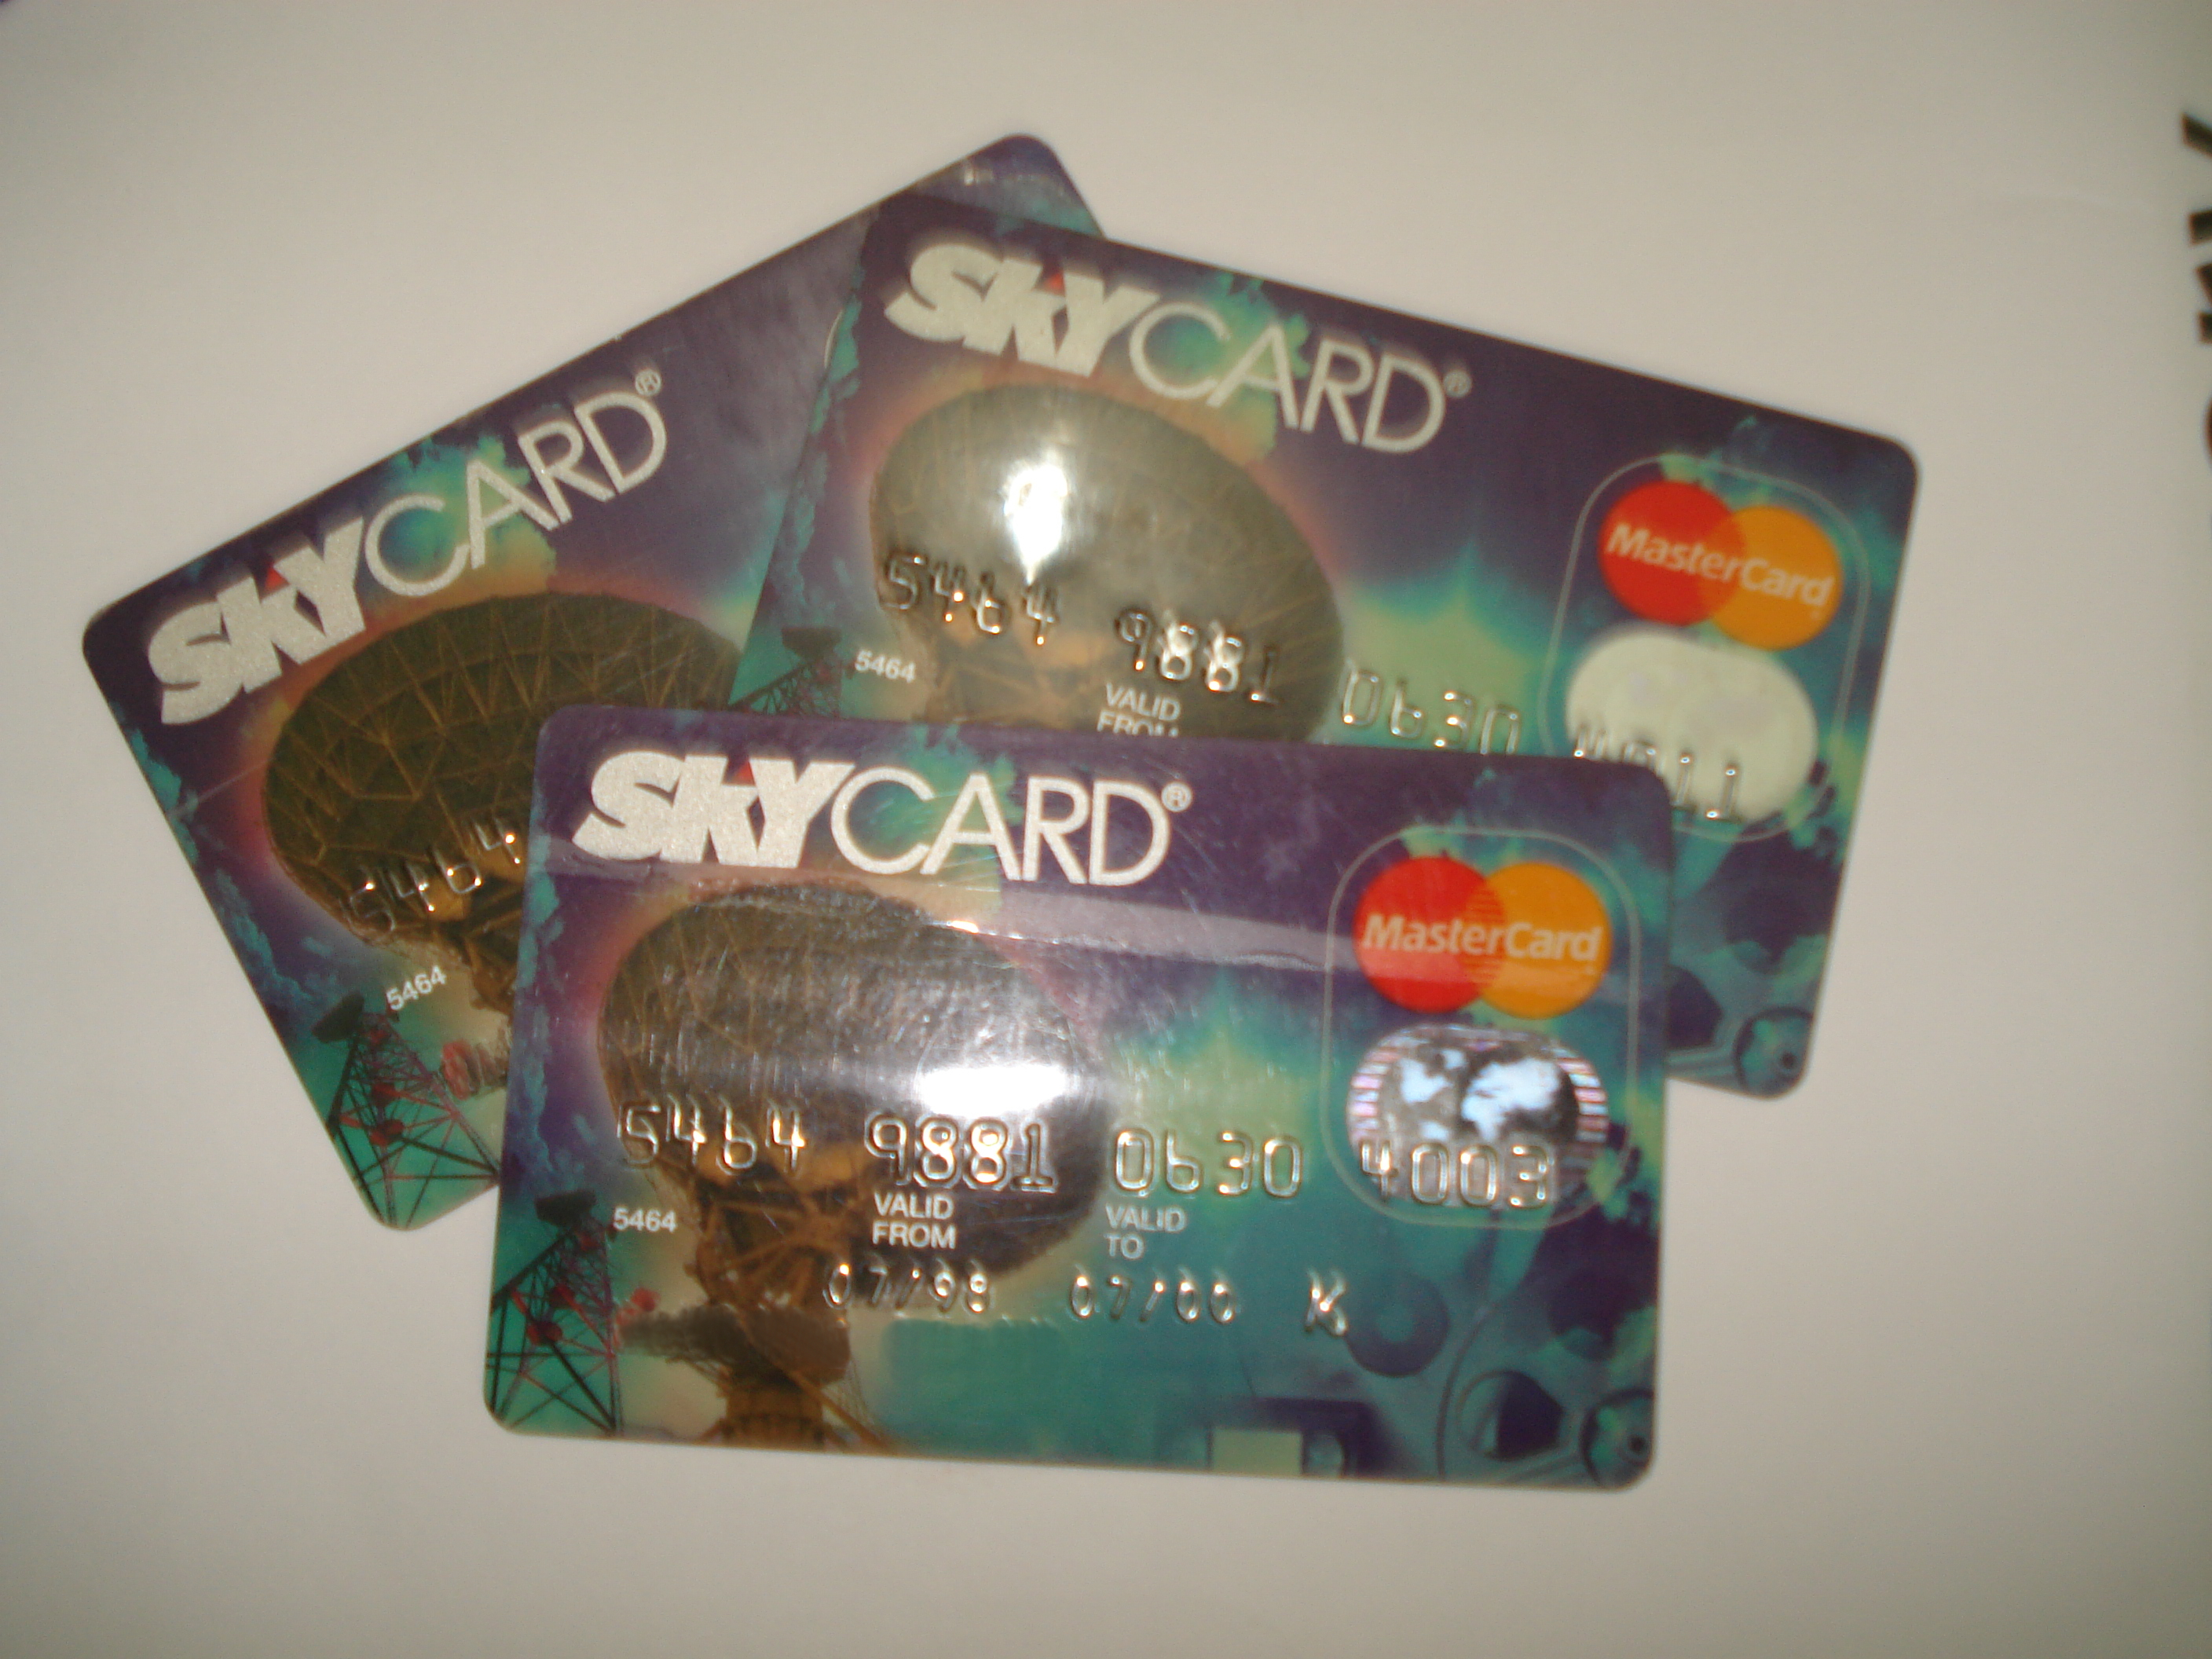 Sky Cable Wikipedia Tv Box Wiring Diagrams Skycard The First Branded Credit Card In Philippines